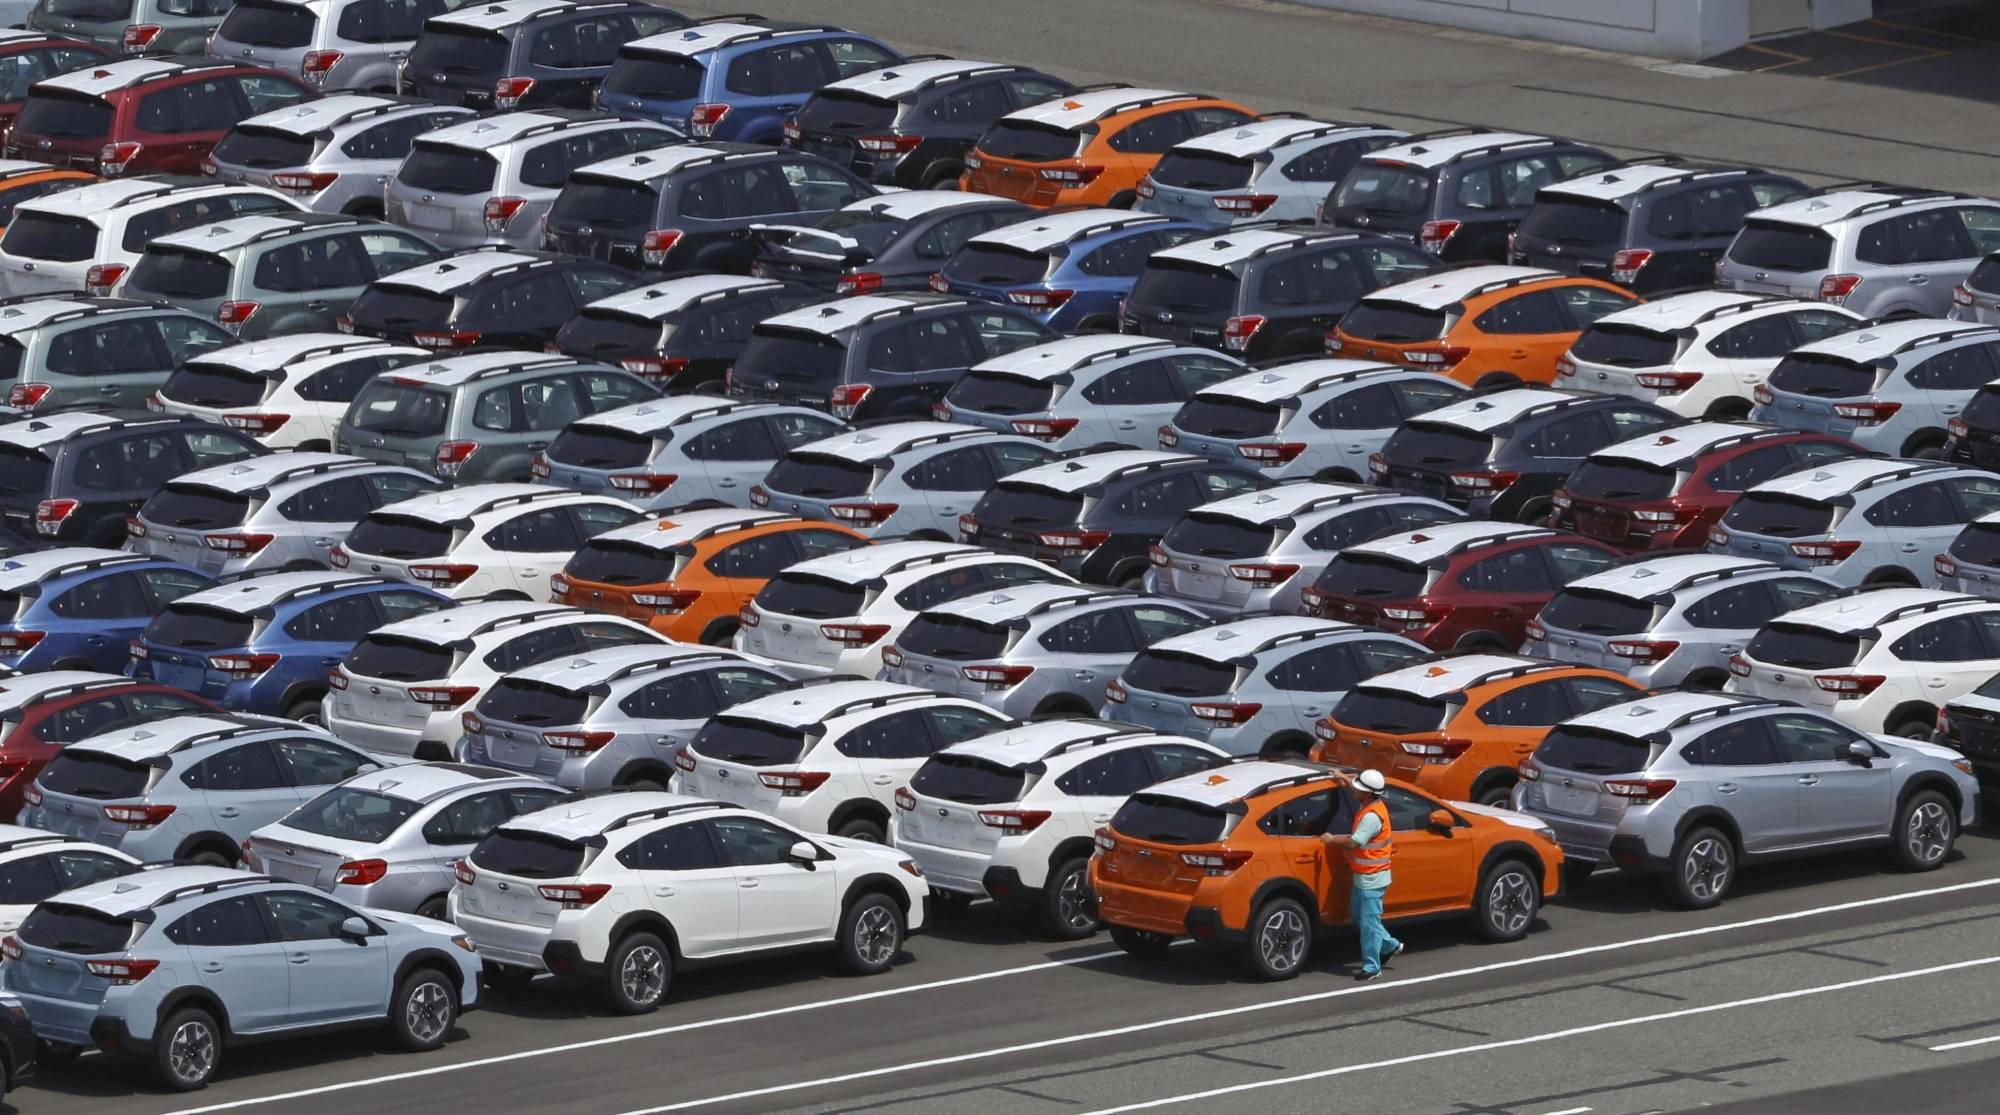 Cars for export await shipment at Kawasaki port. Exports rose 38% in April from a year earlier, compared with a 30.9% increase expected by economists and following a 16.1% rise in March, official data showed on Thursday. | KYODO